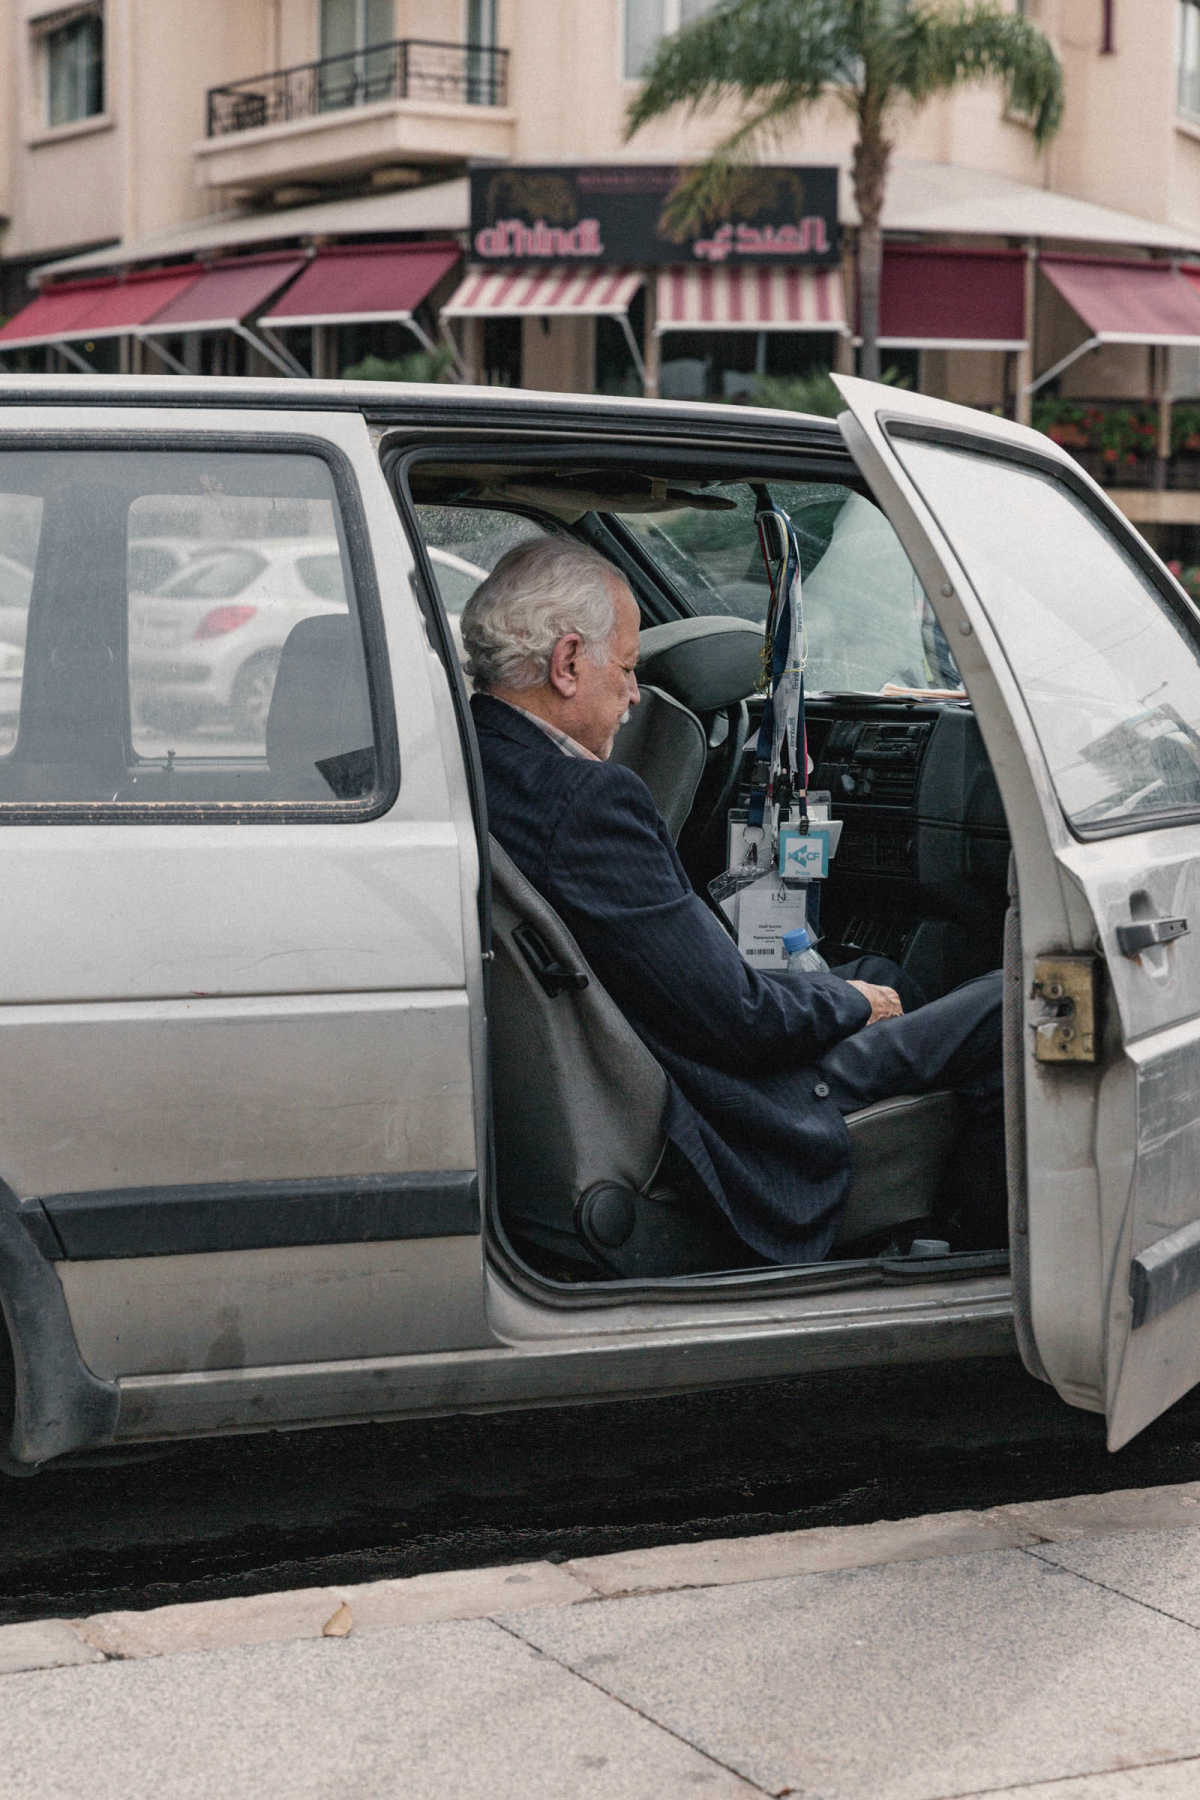 An old man resting in the passenger seat of a car